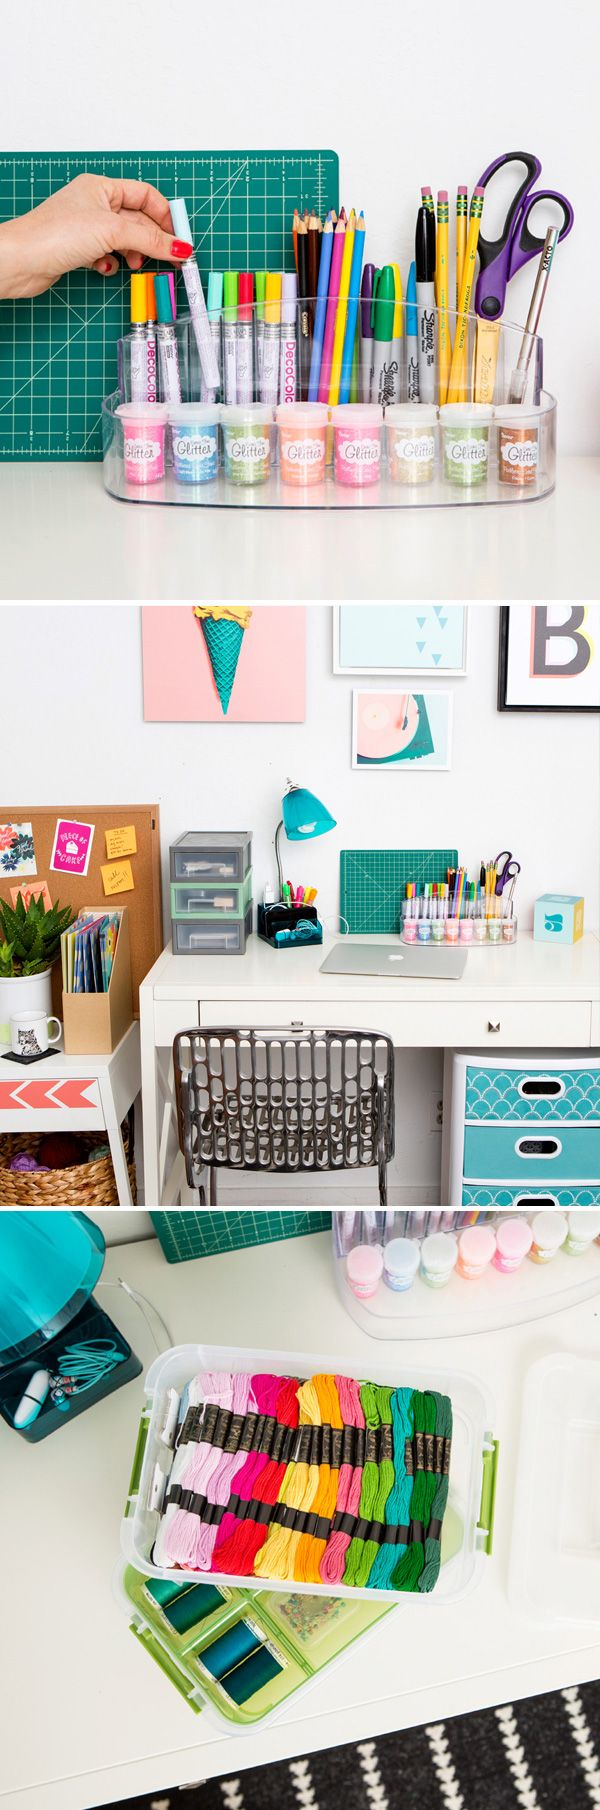 Get everything you need to get your desk organized at Target! Start by using this great 6 compartment counter tray, storage bins for your smaller items, and a stack and carry 3 tray organizer for all your other office essentials.